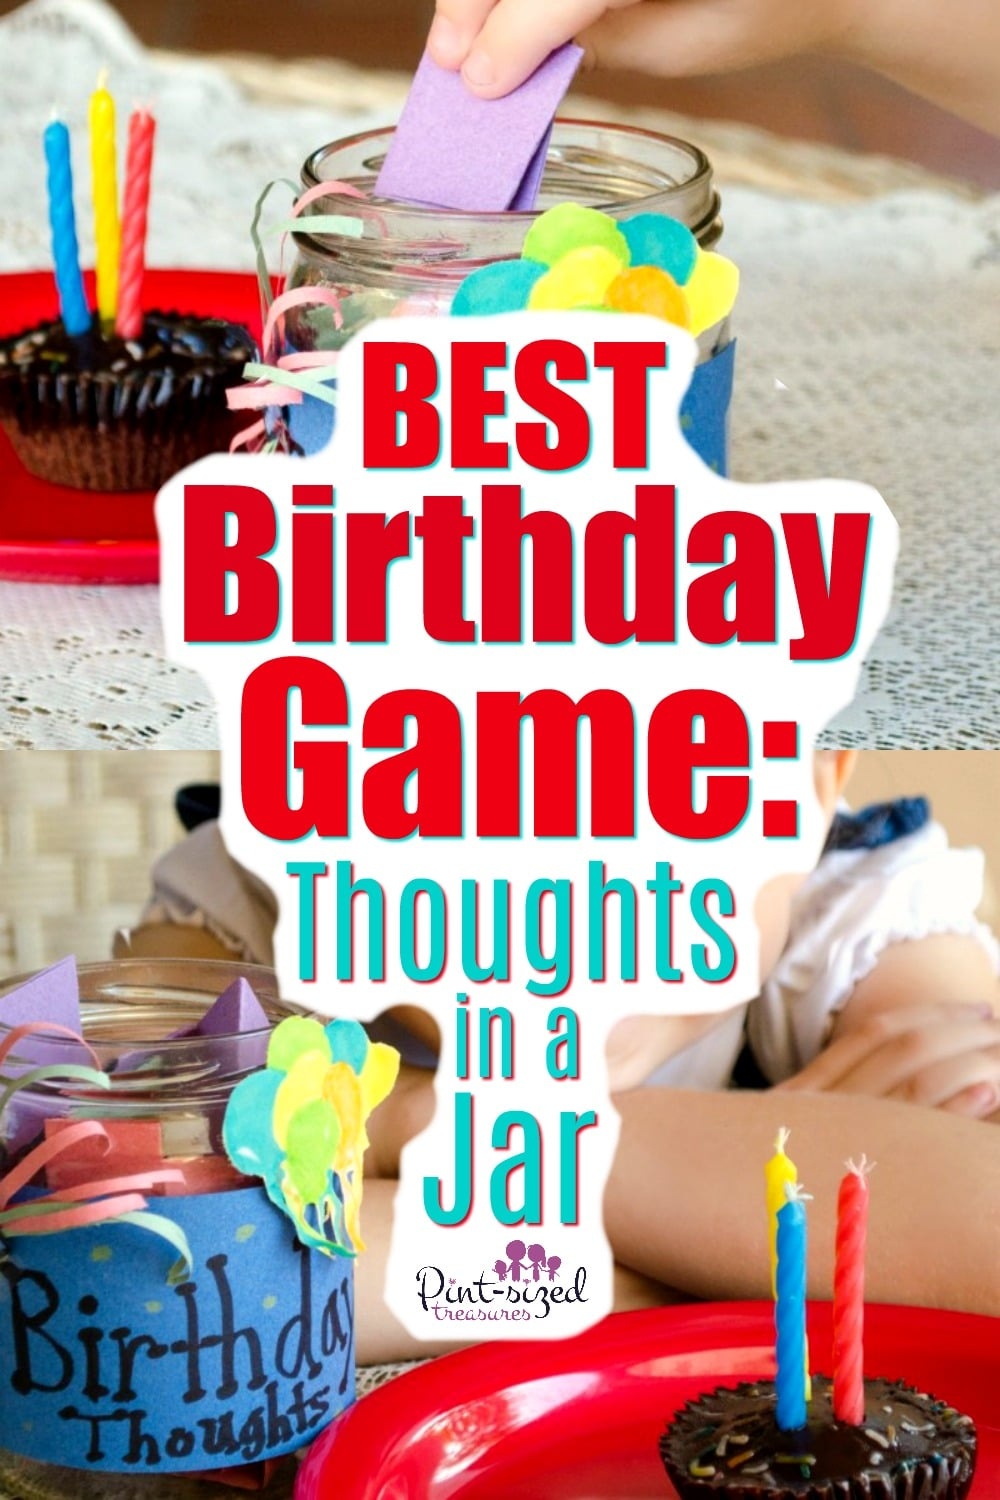 Best birthday game called Thoughts in a Jar